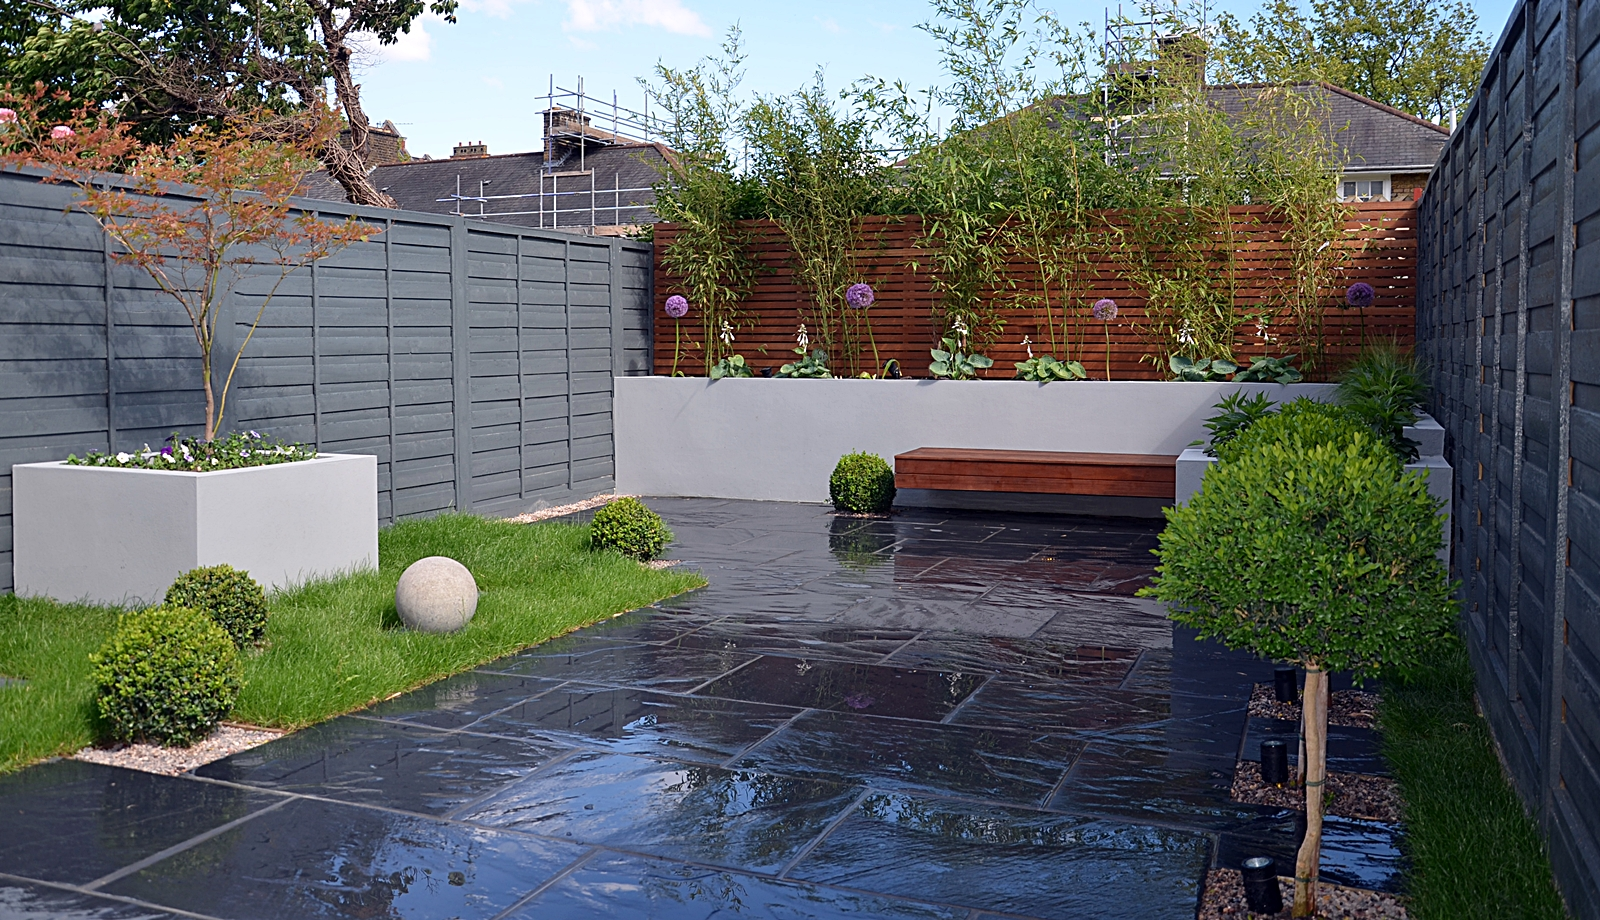 Modern garden design london london garden blog for Garden patio design ideas